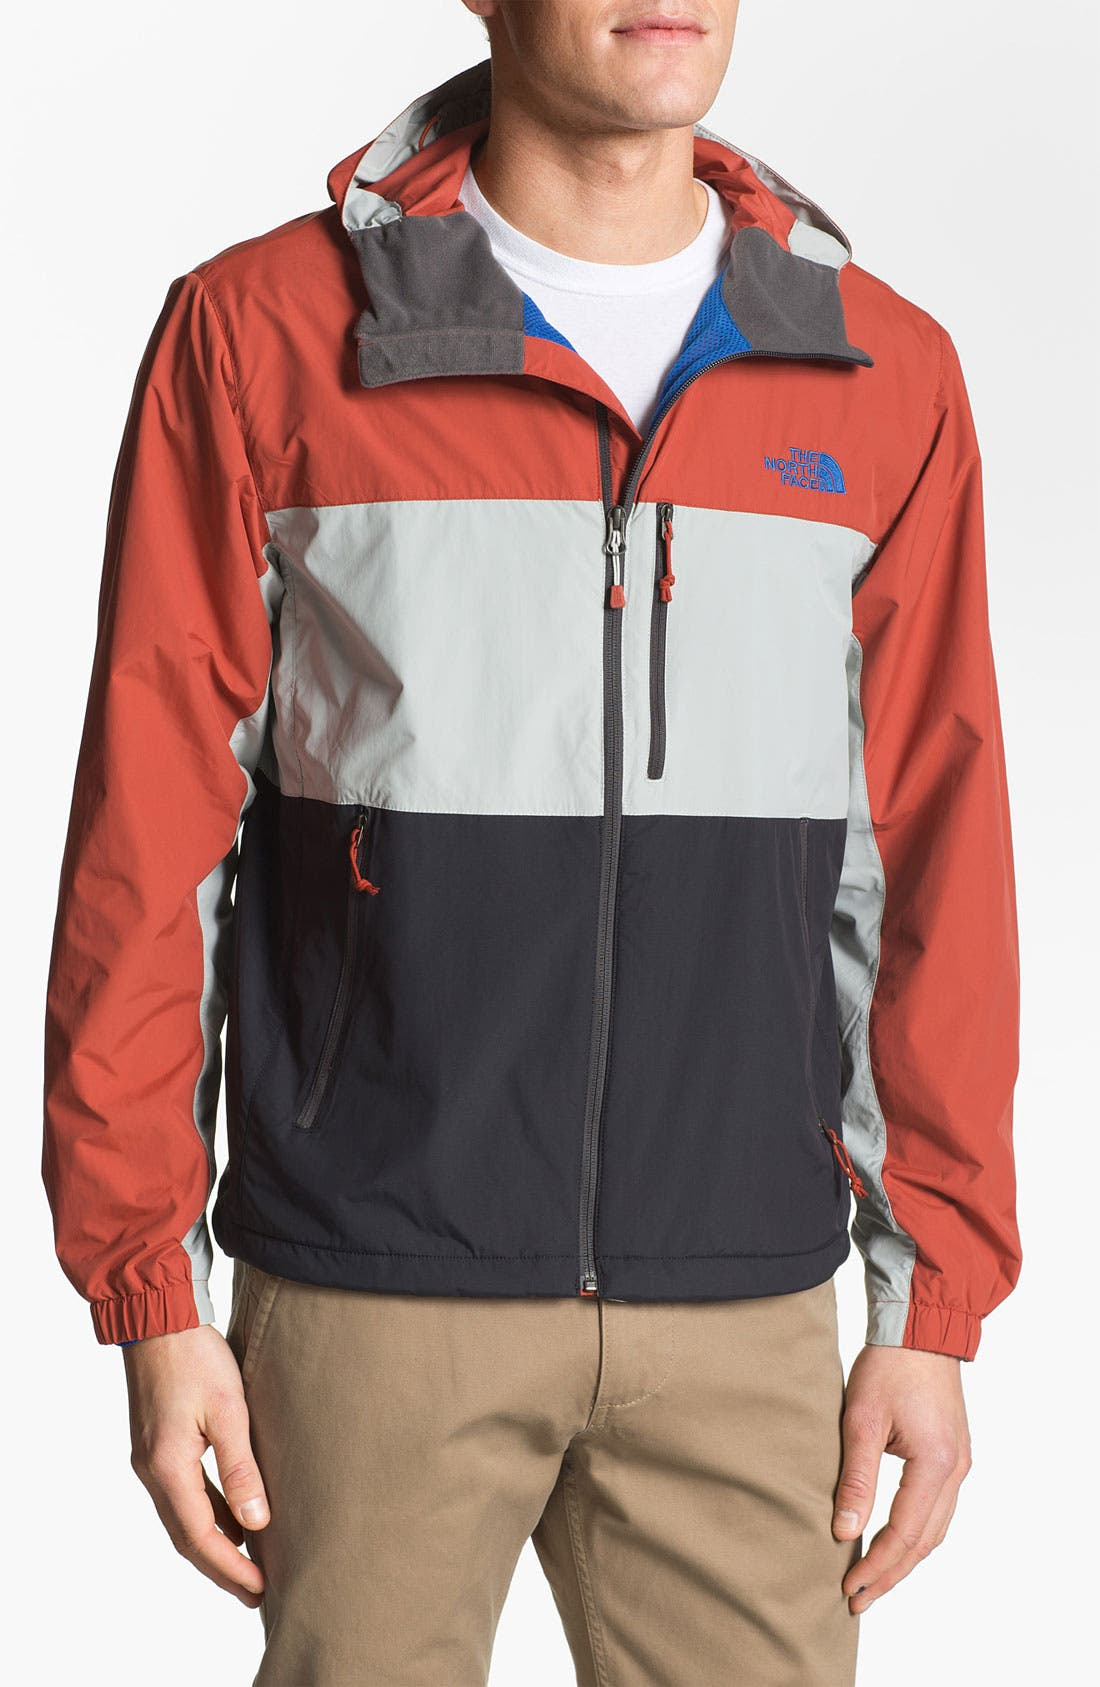 Main Image - The North Face 'Atmosphere' Tricolor Windbreaker